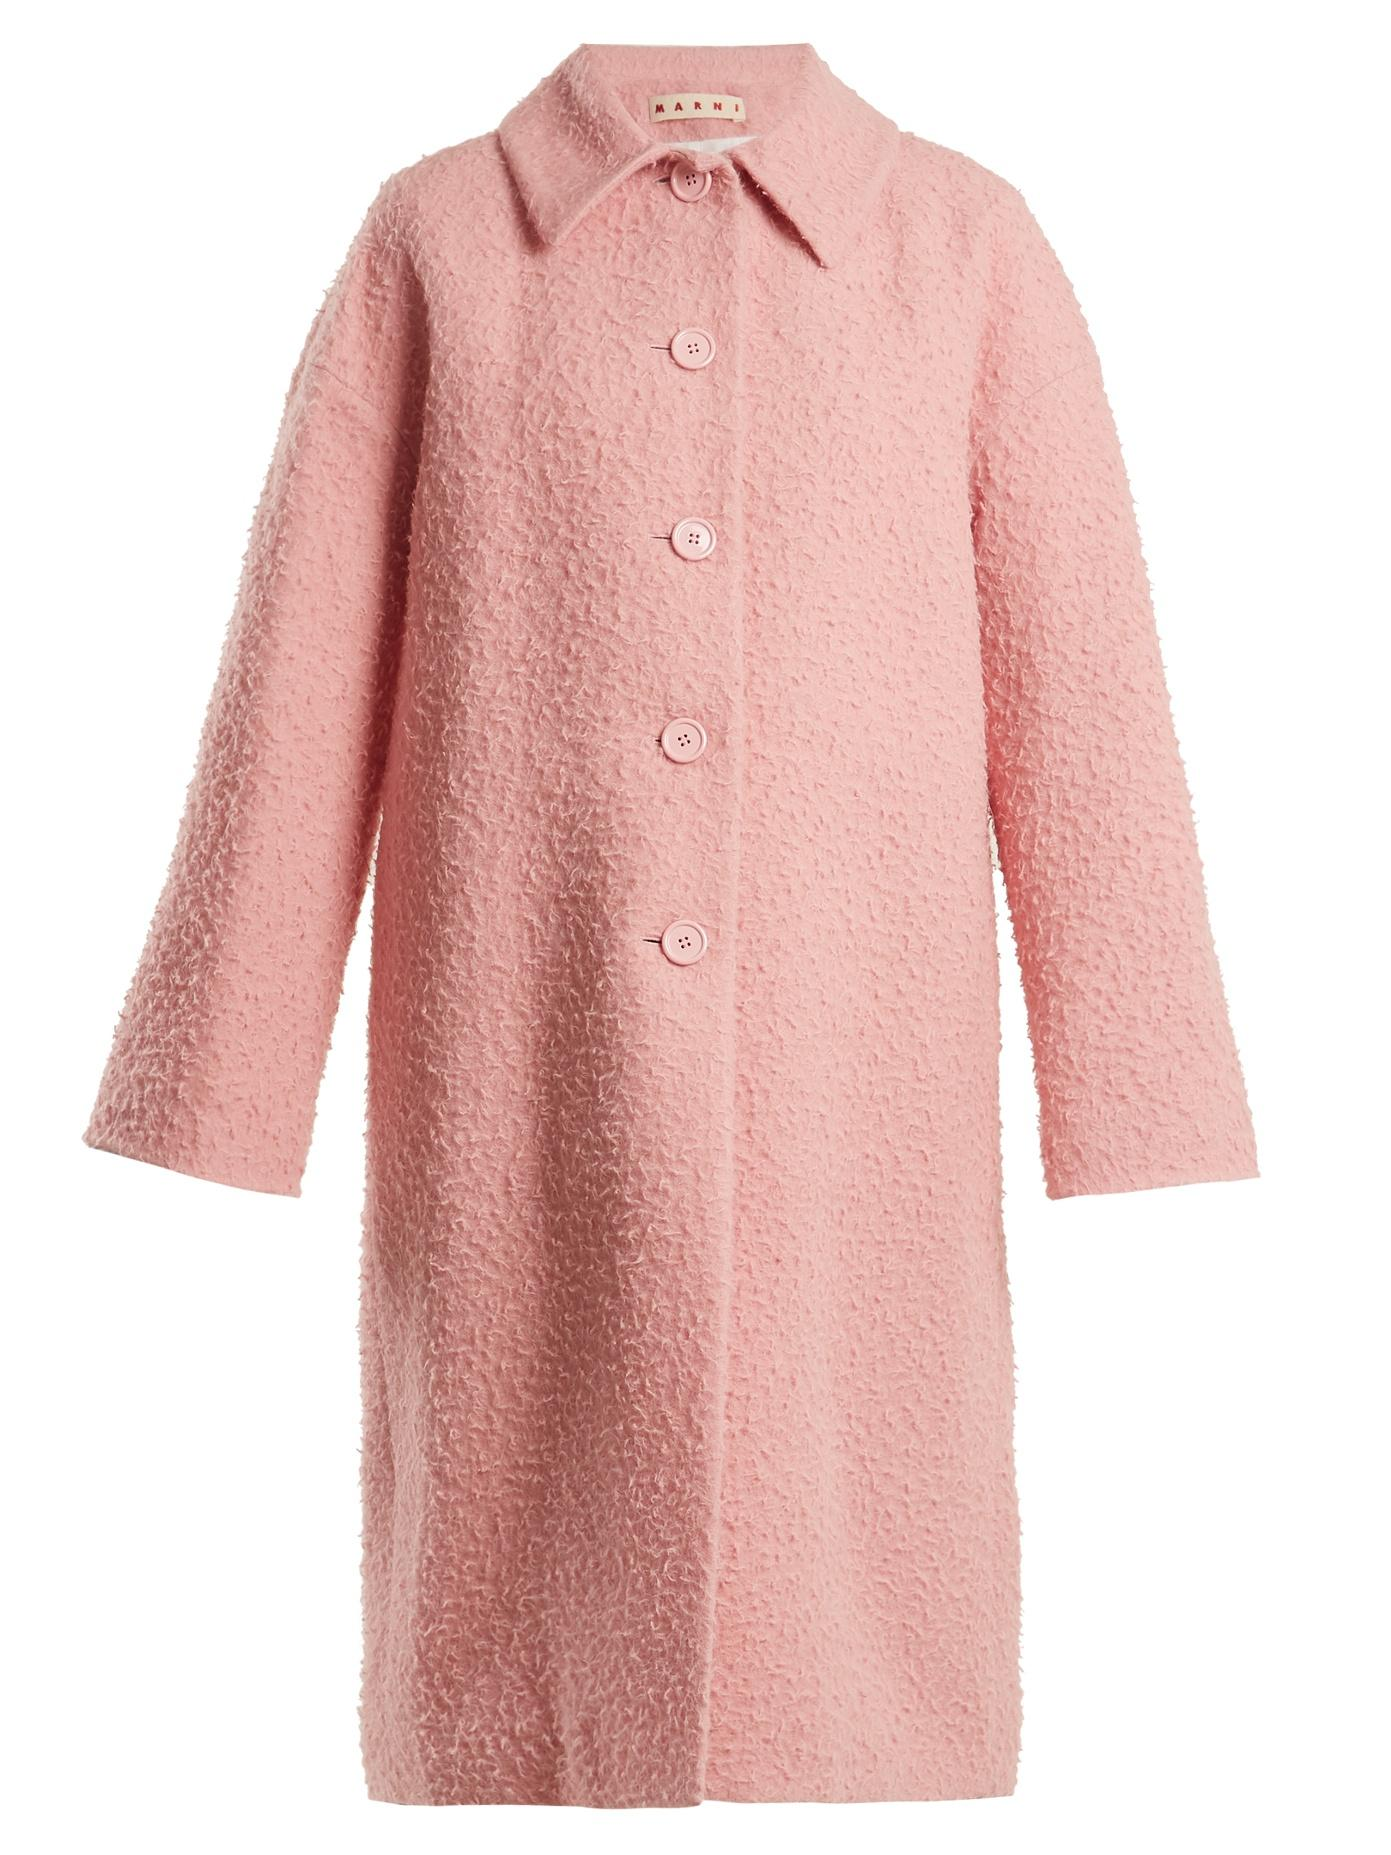 Marni Single-Breasted Alpaca And Silk-Blend Coat In Pink